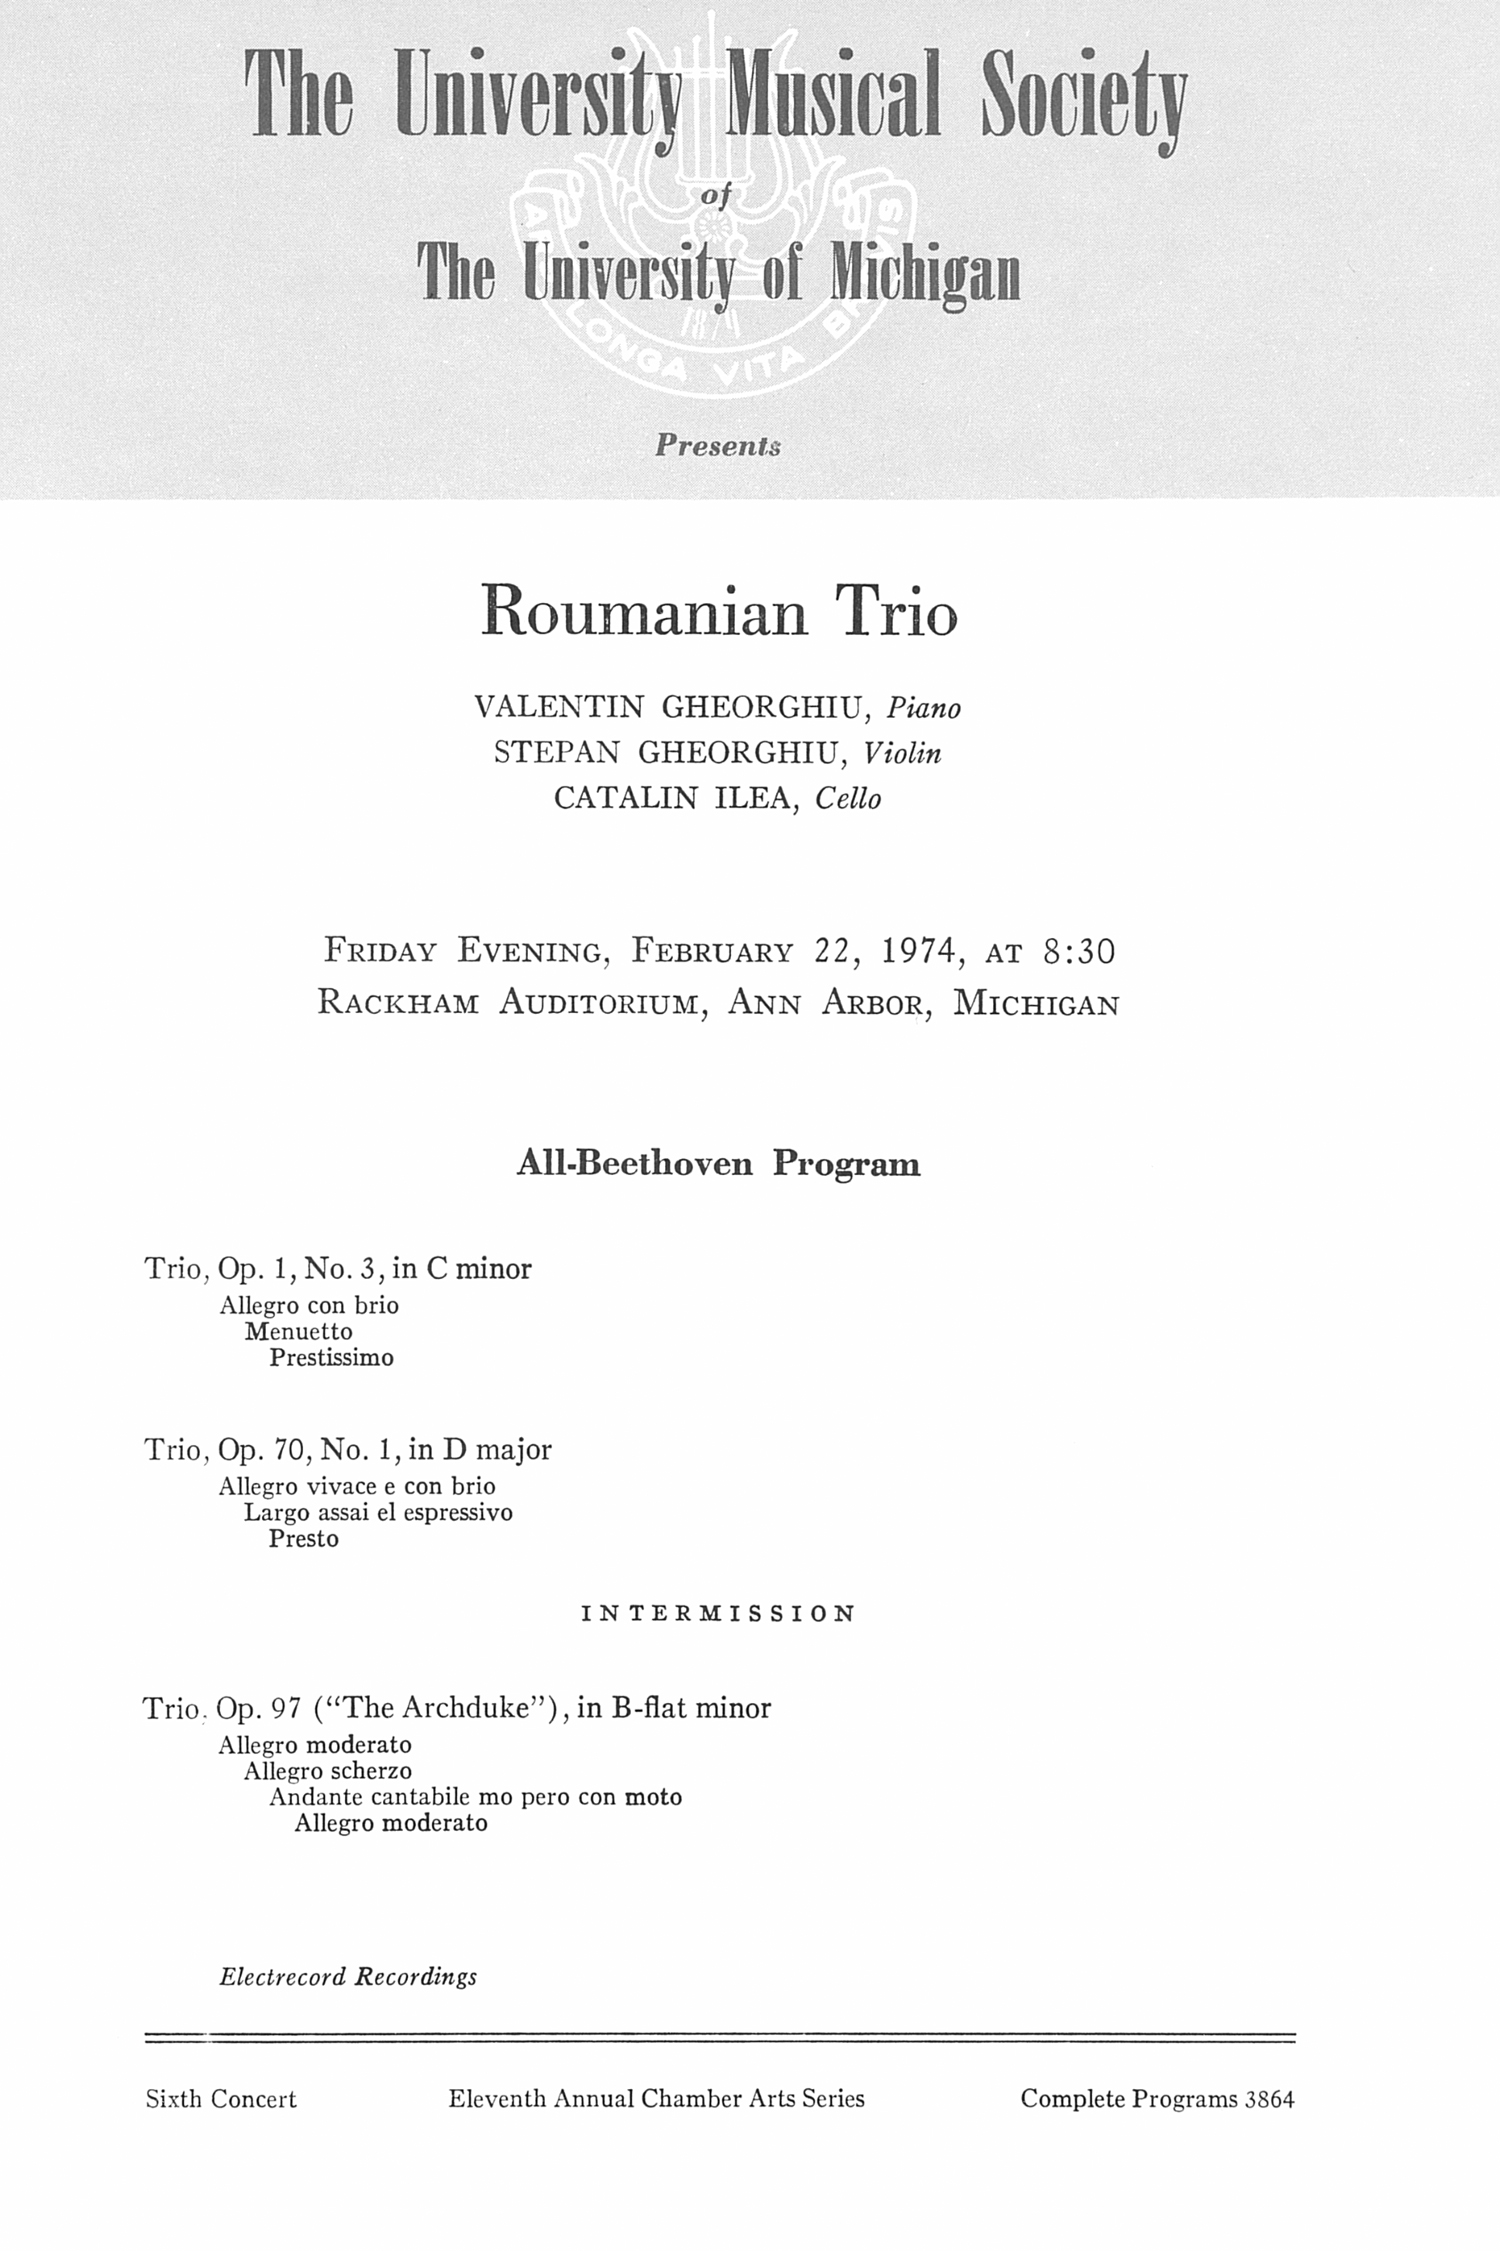 UMS Concert Program, February 22, 1974: Roumanian Trio --  image